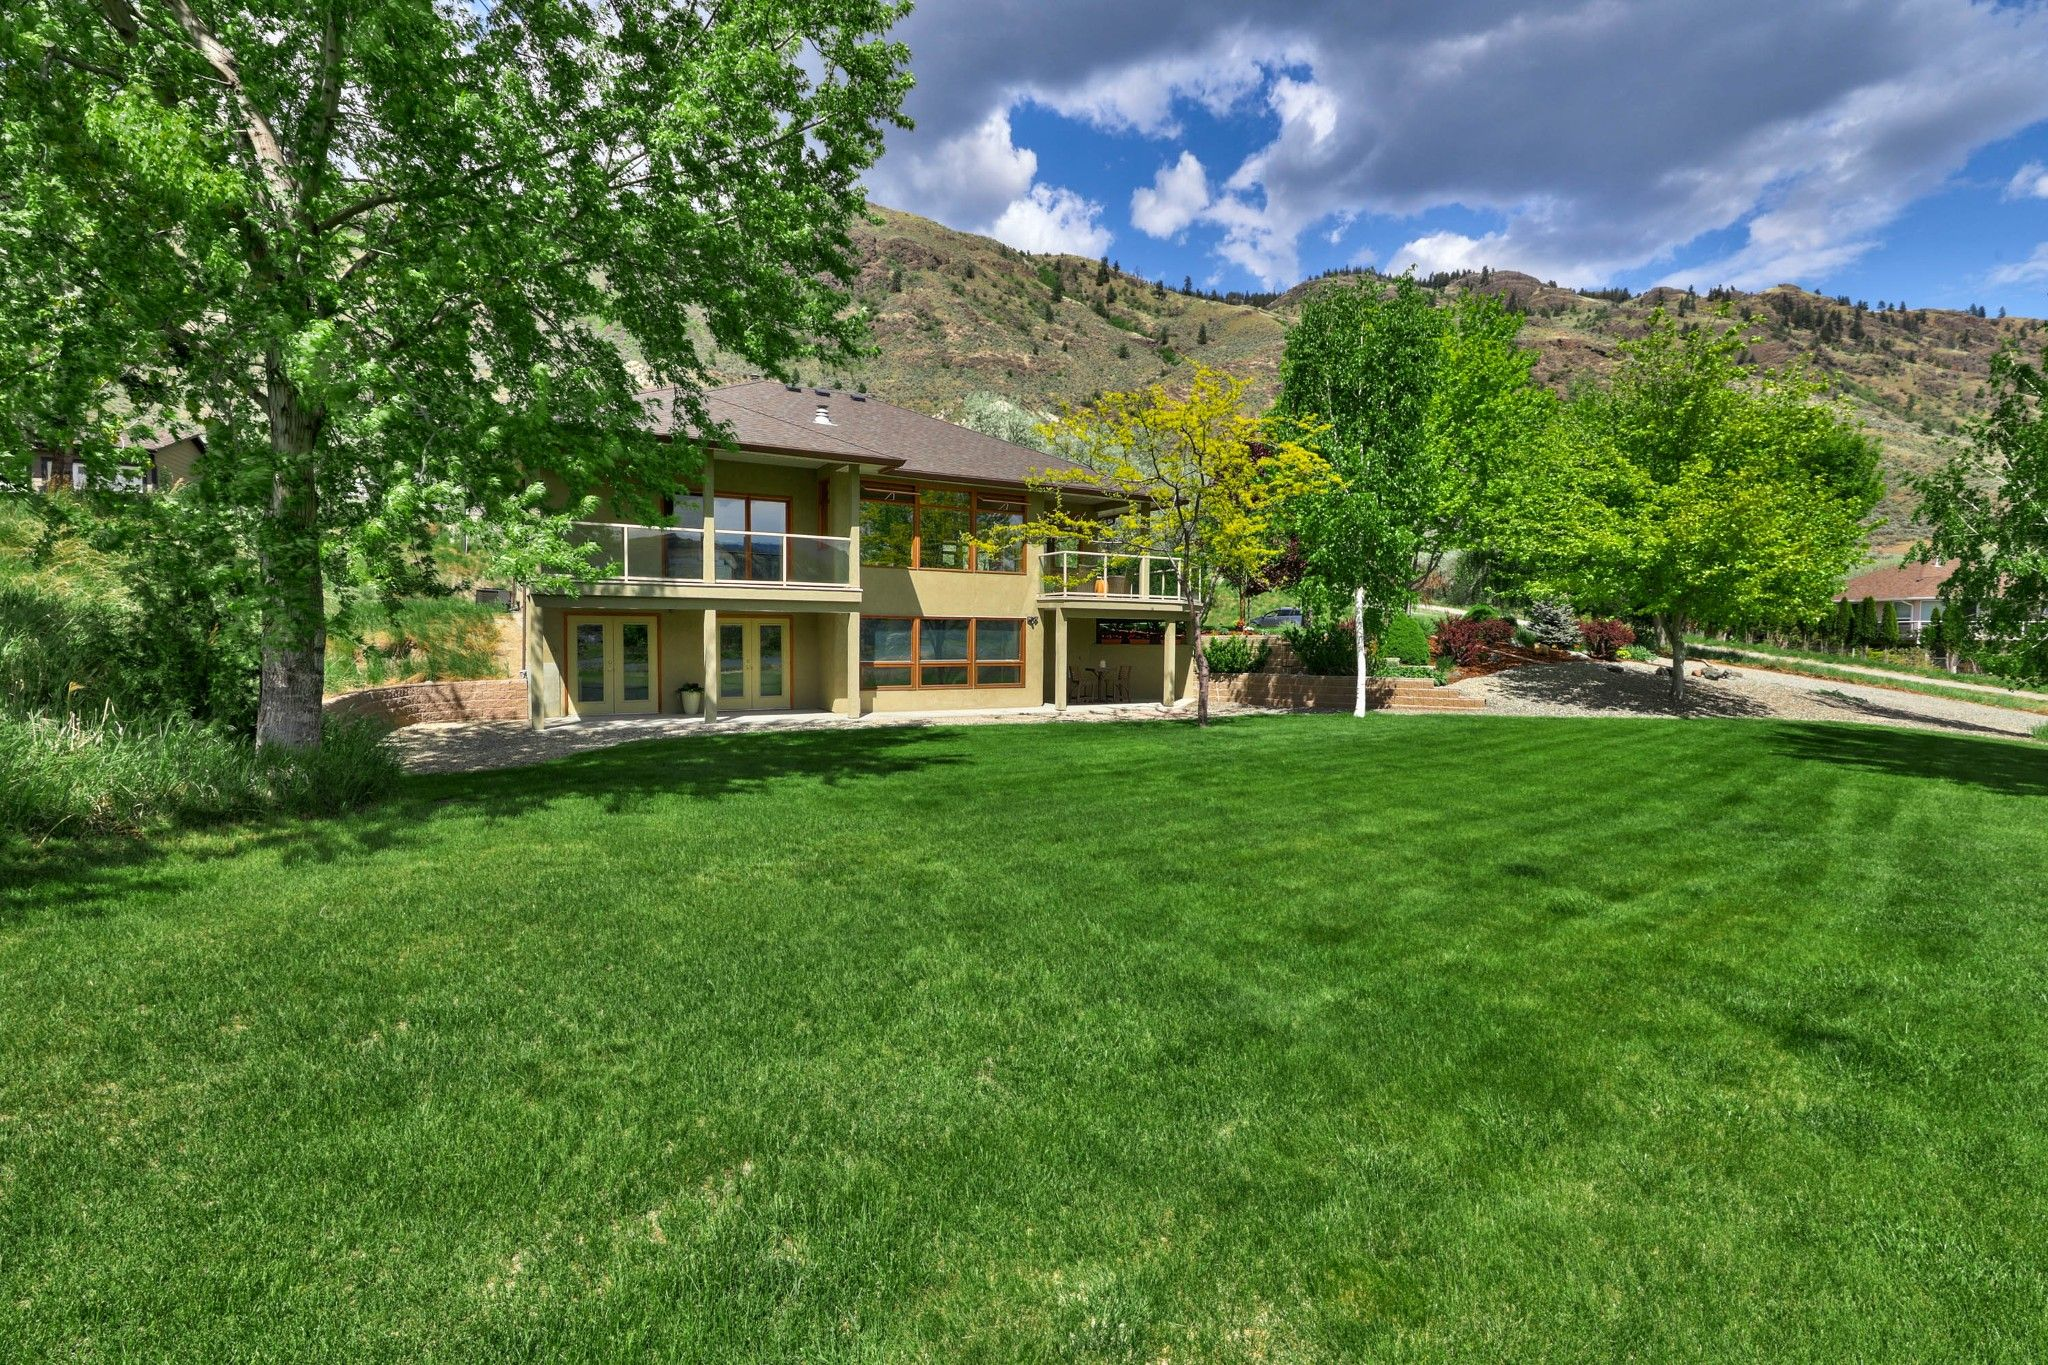 Photo 43: Photos: 3299 E Shuswap Road in Kamloops: South Thompson Valley House for sale : MLS®# 162162